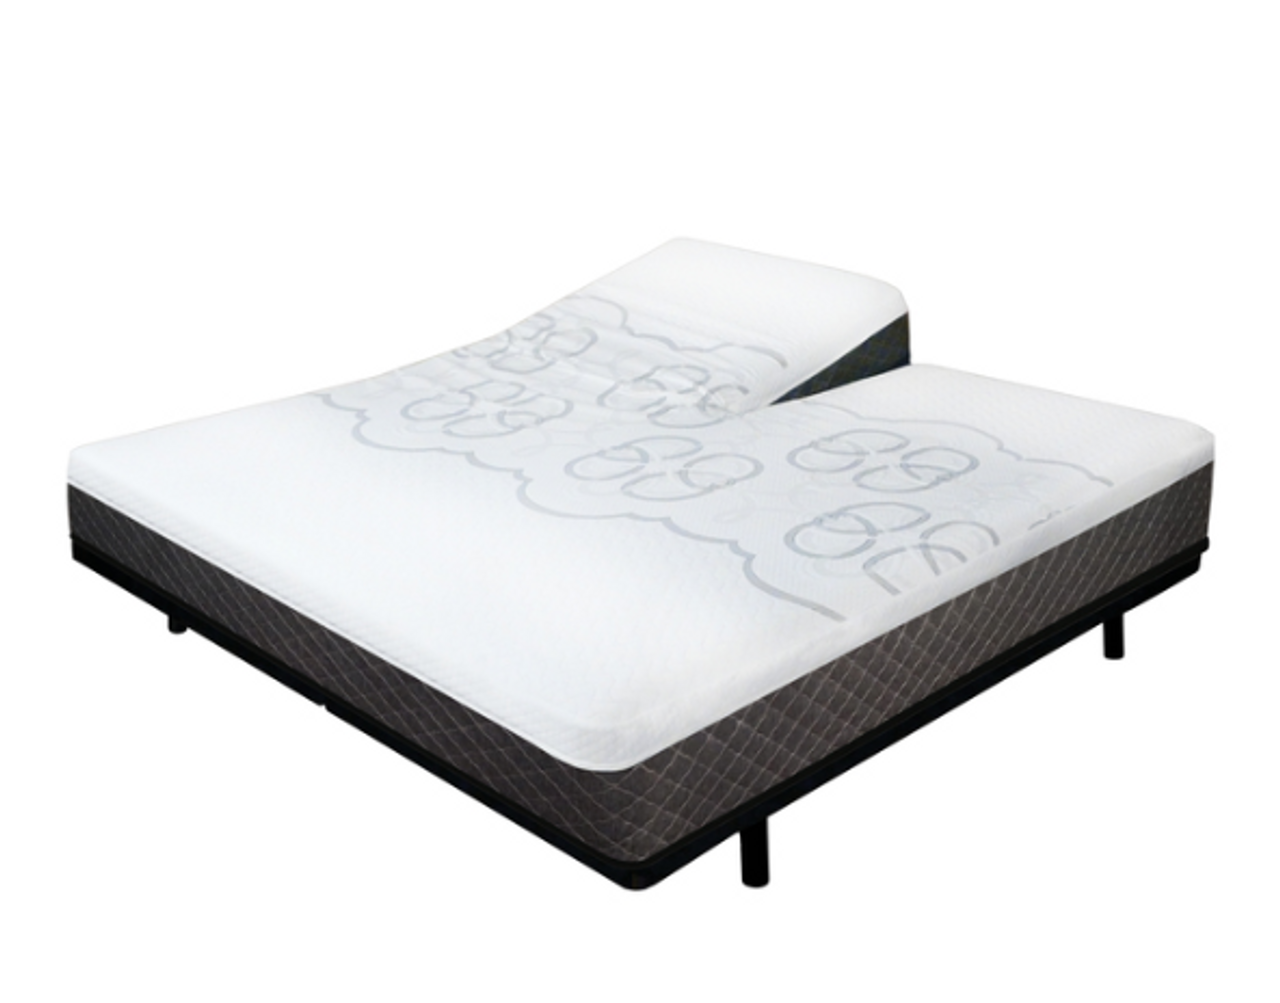 Complete Air Beds